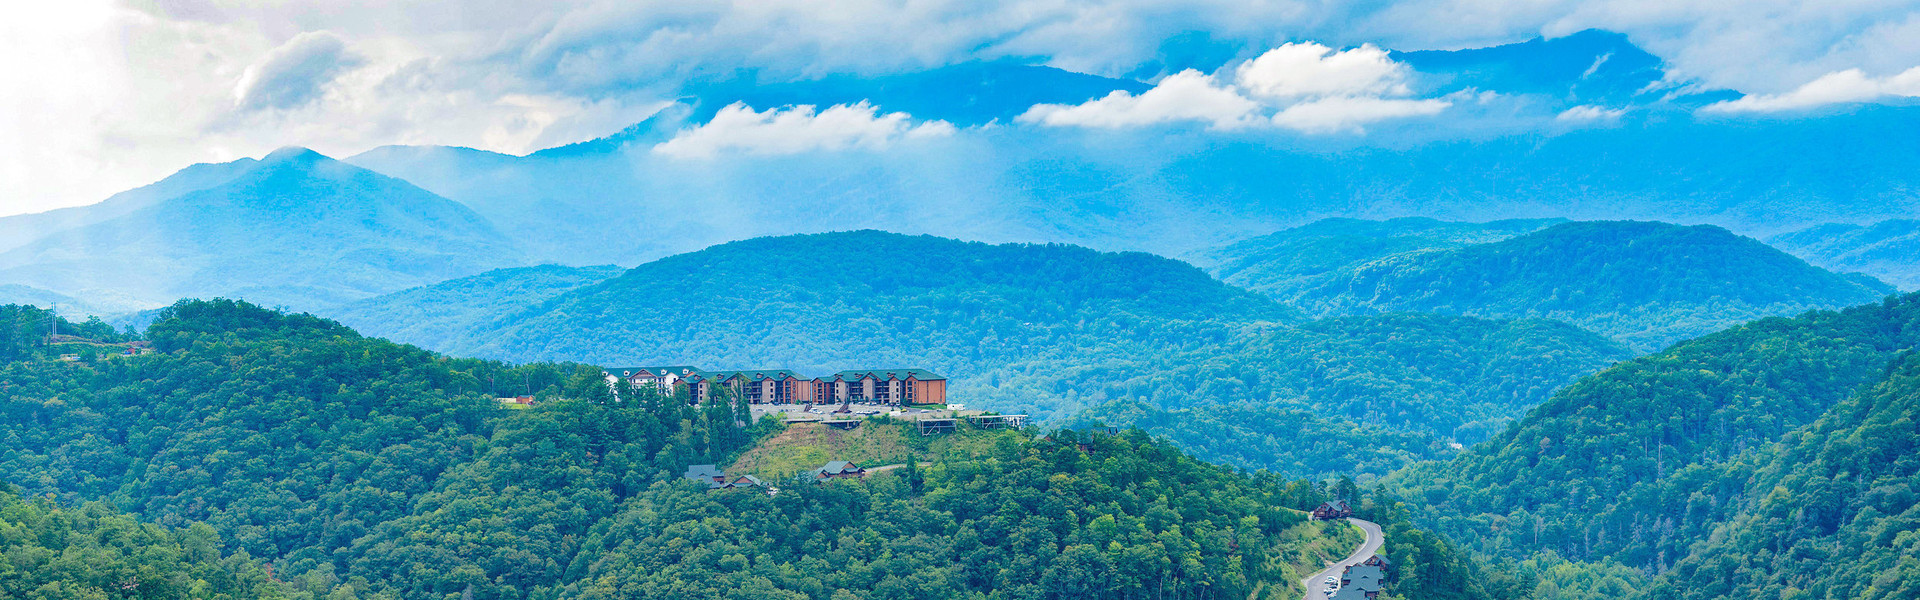 Gatlinburg Resort near the Smoky Mountains | Westgate Smoky Mountain Resort